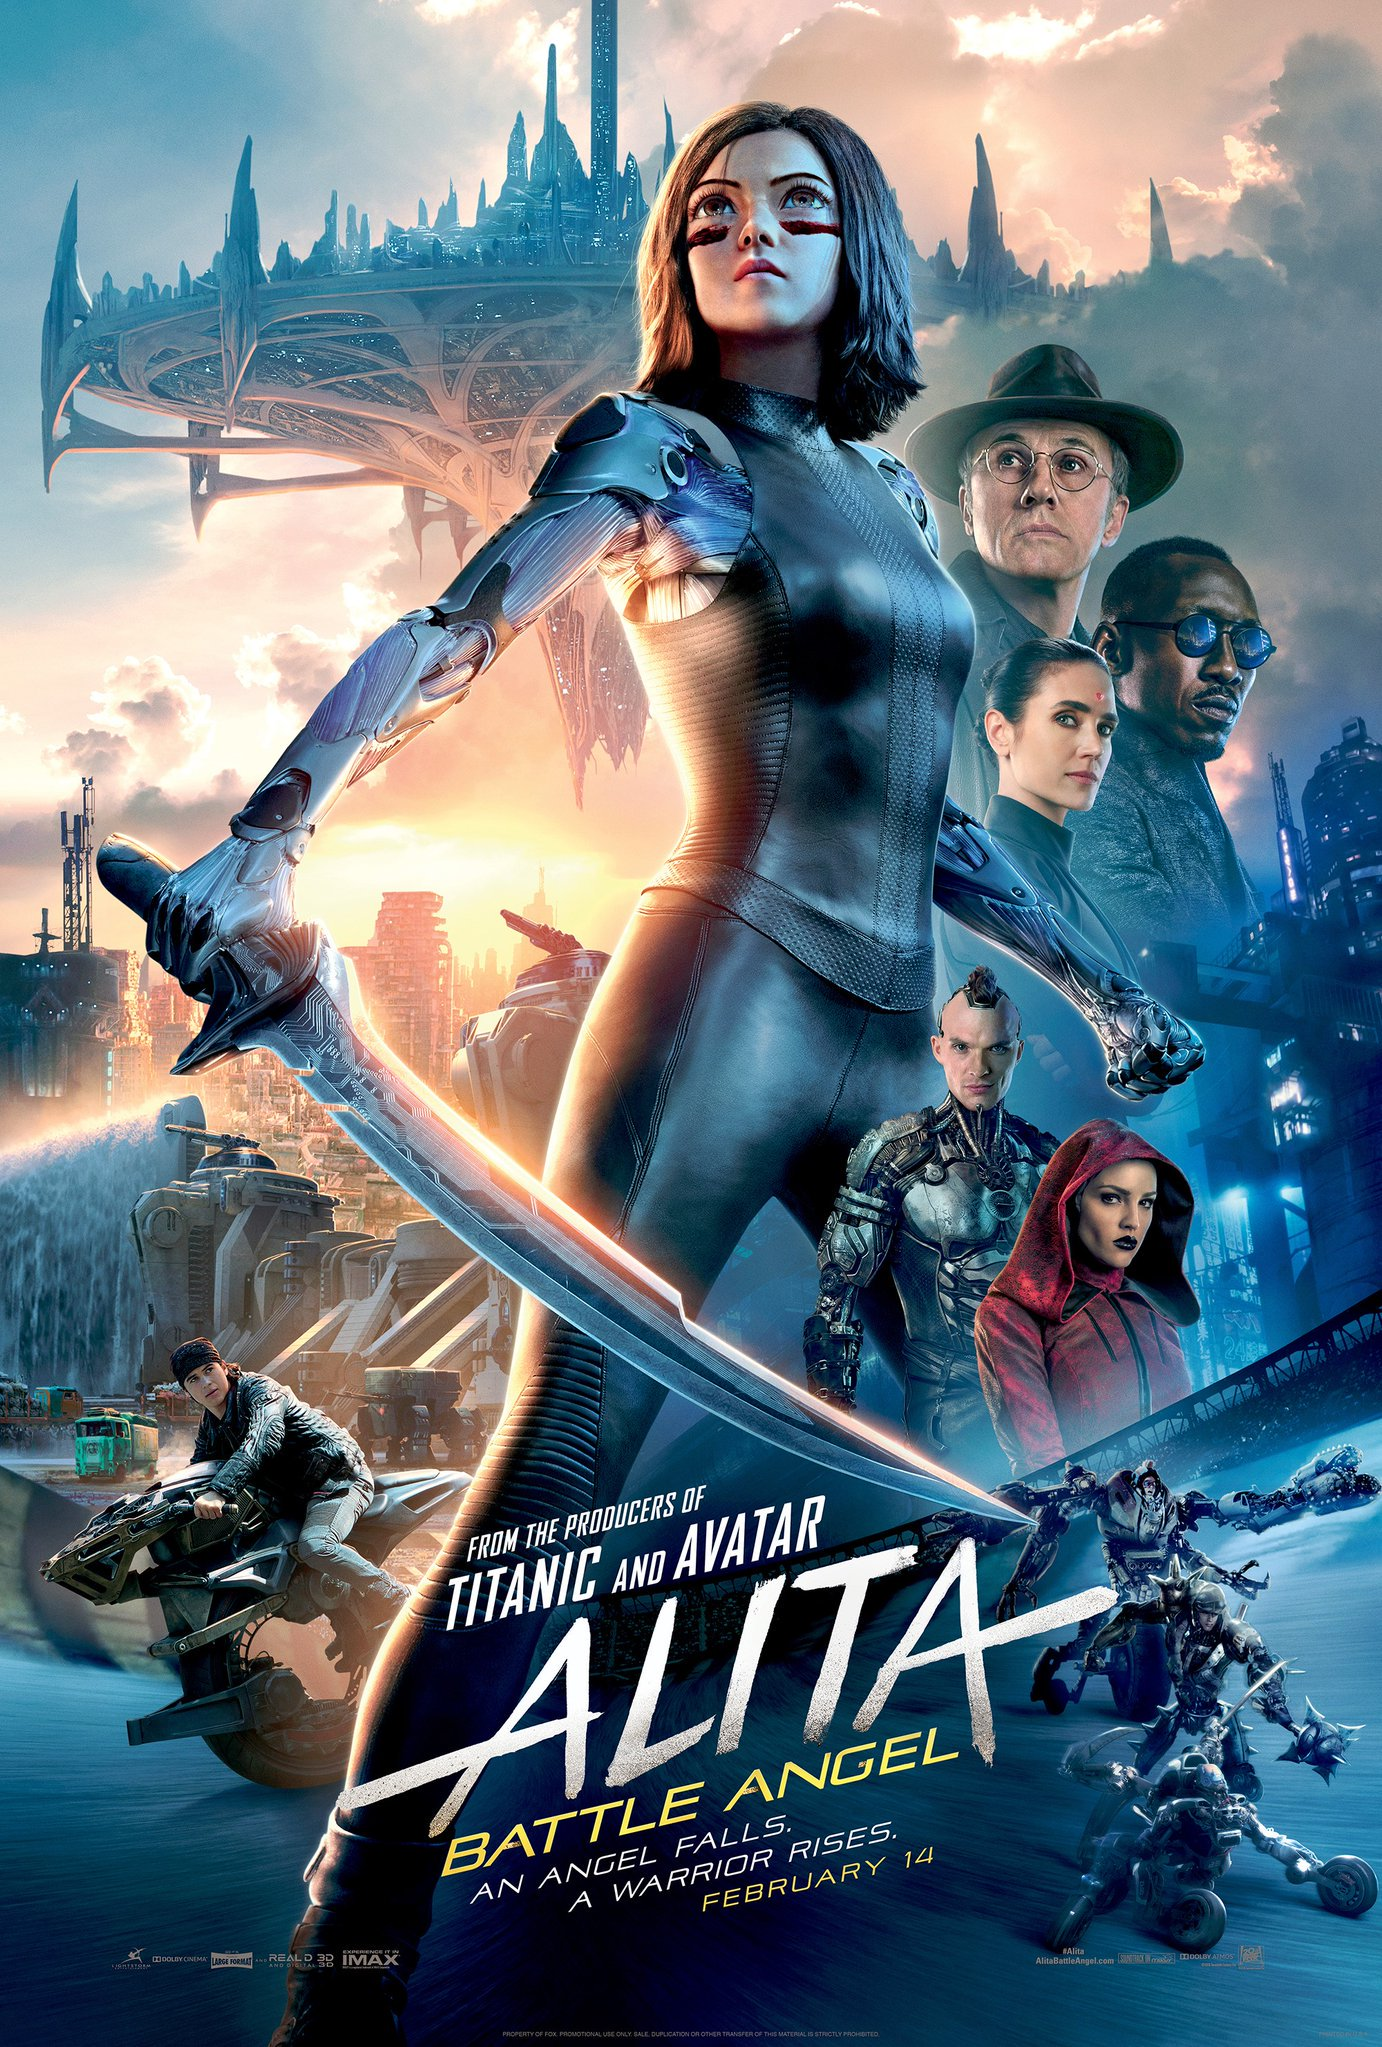 Alita: Battle Angel 2019 Full Movie In Dual Audio